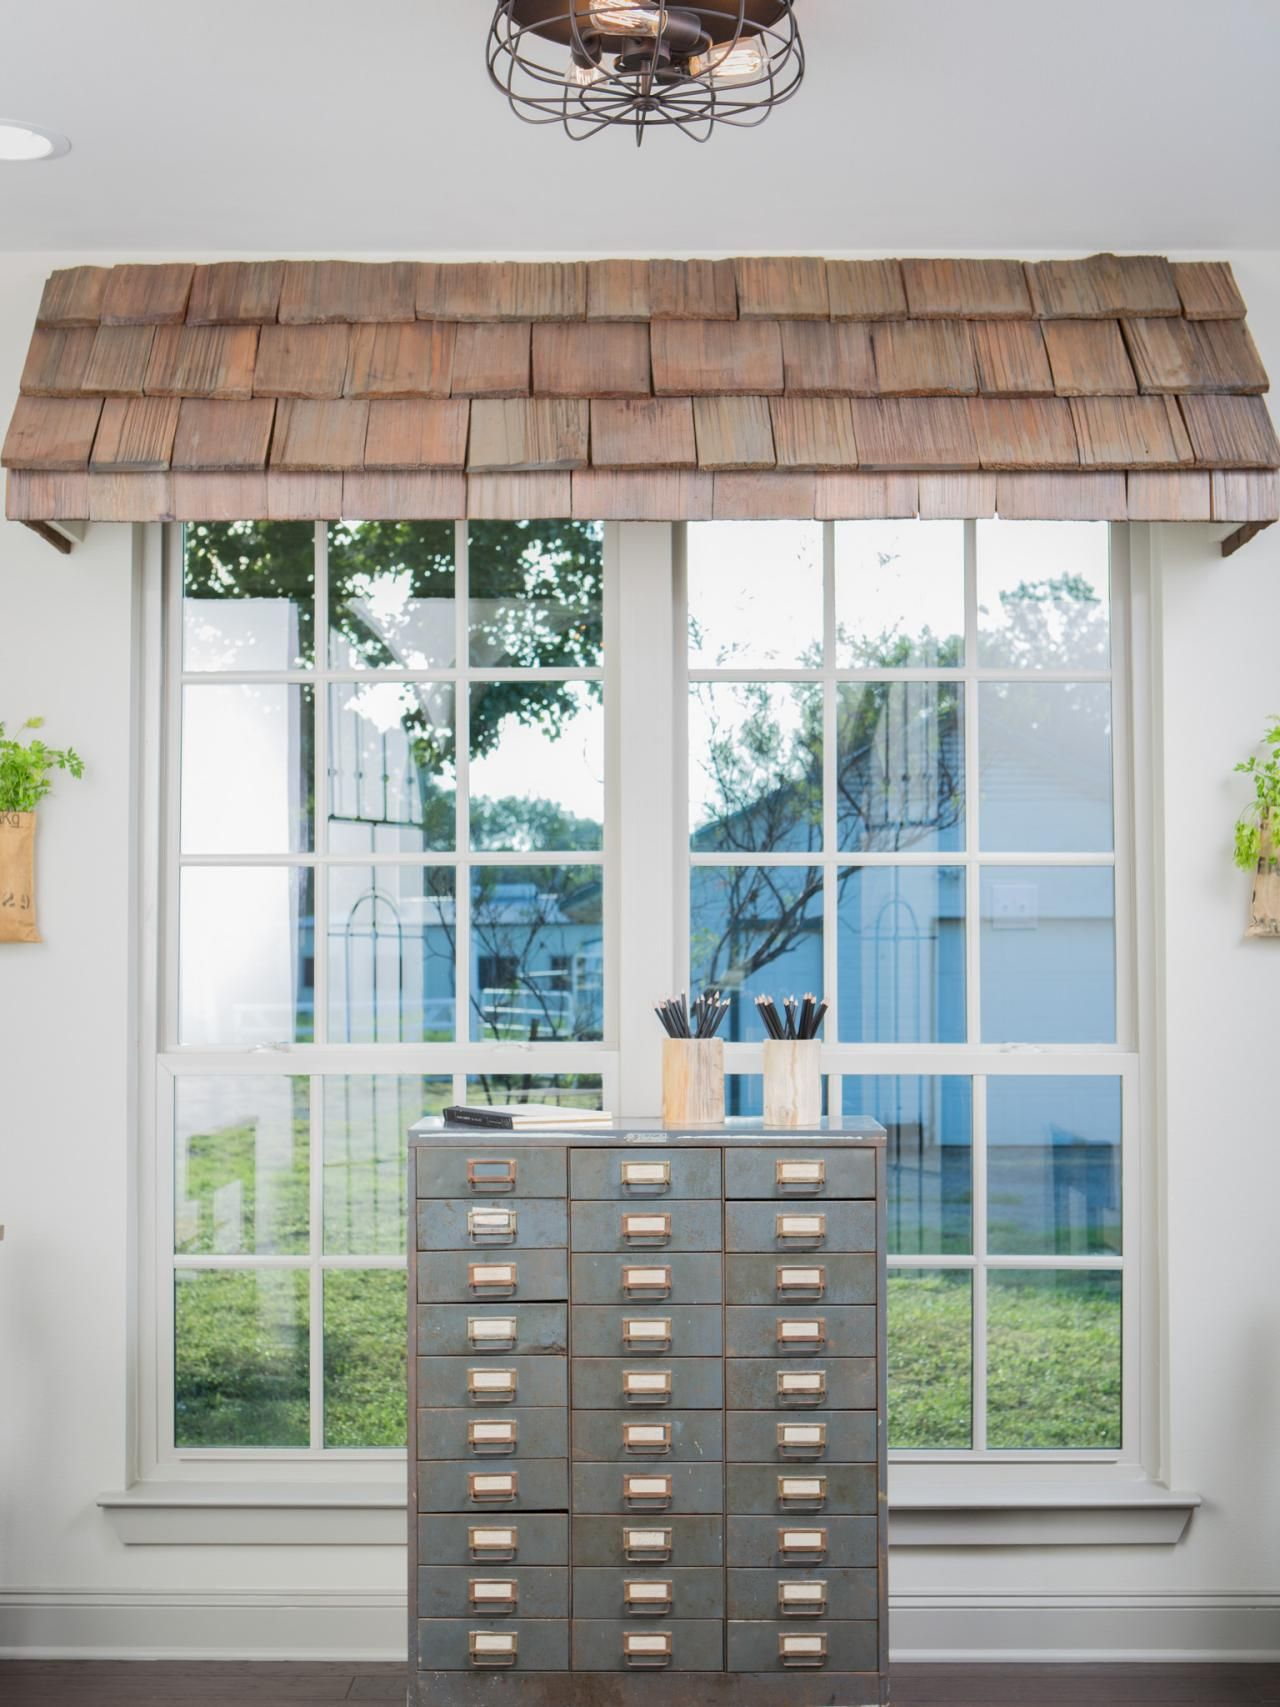 Find The Best Of Fixer Upper From Hgtv Game Media Room